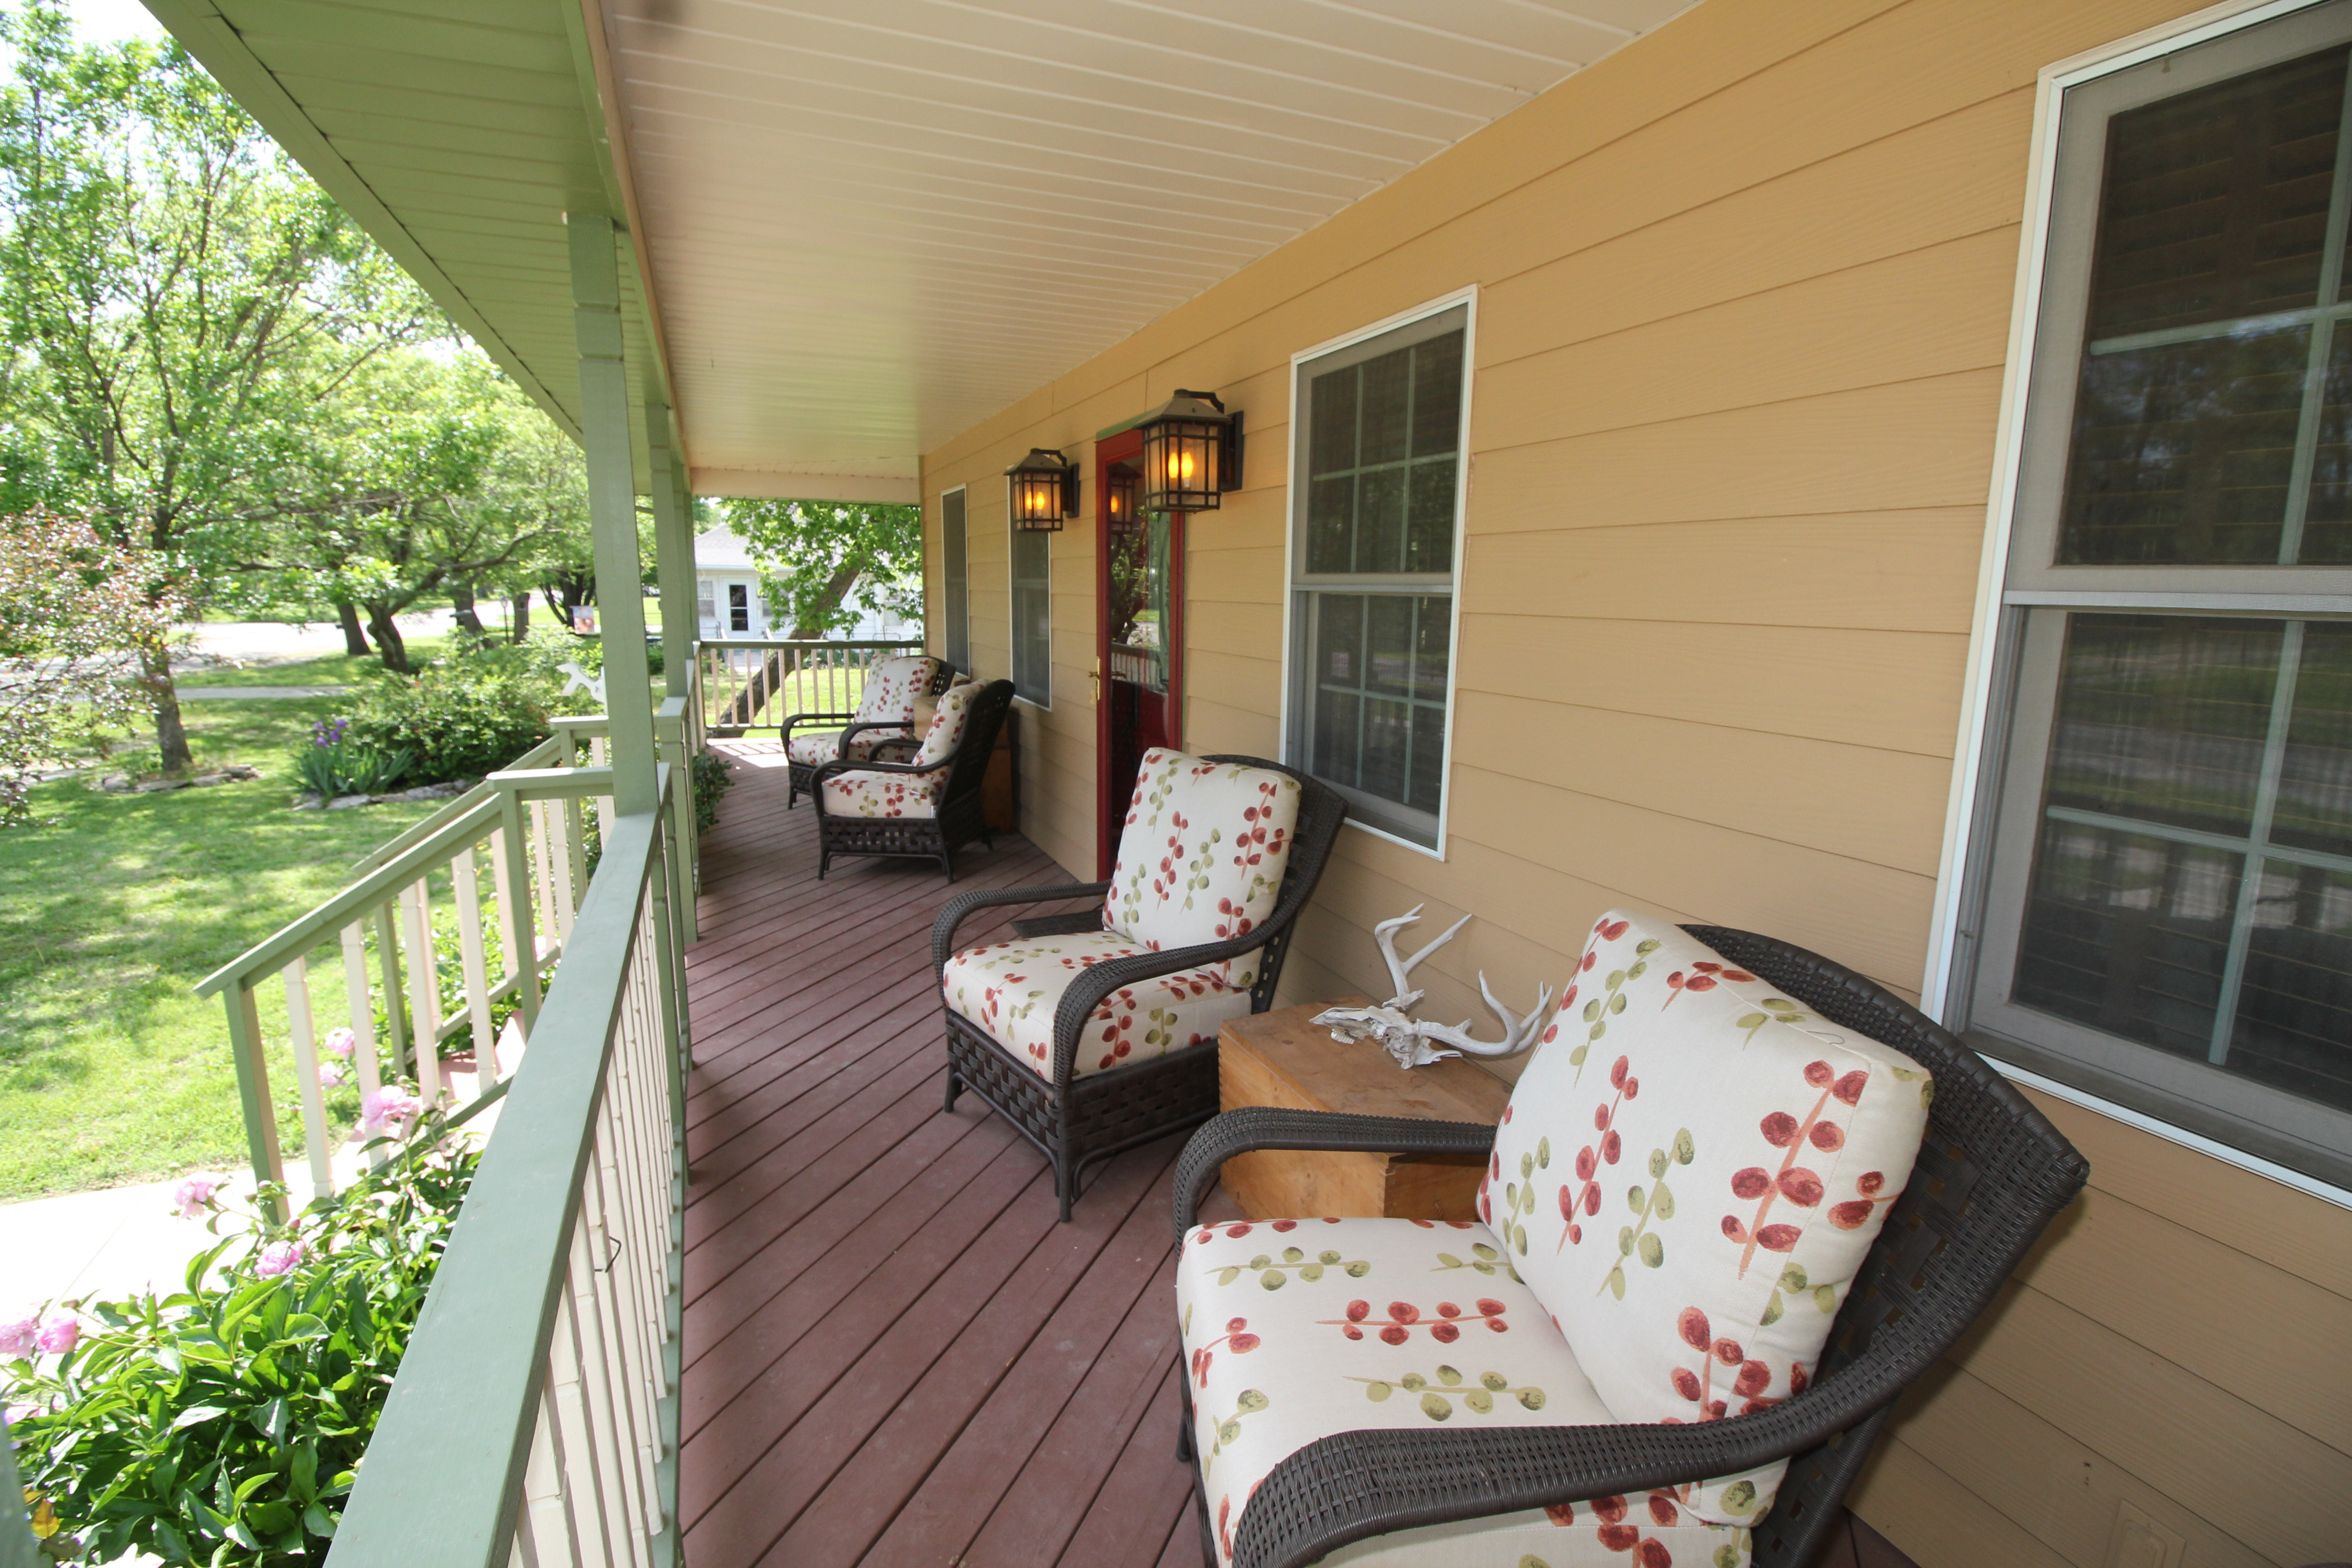 Comfy Chairs on the Porch